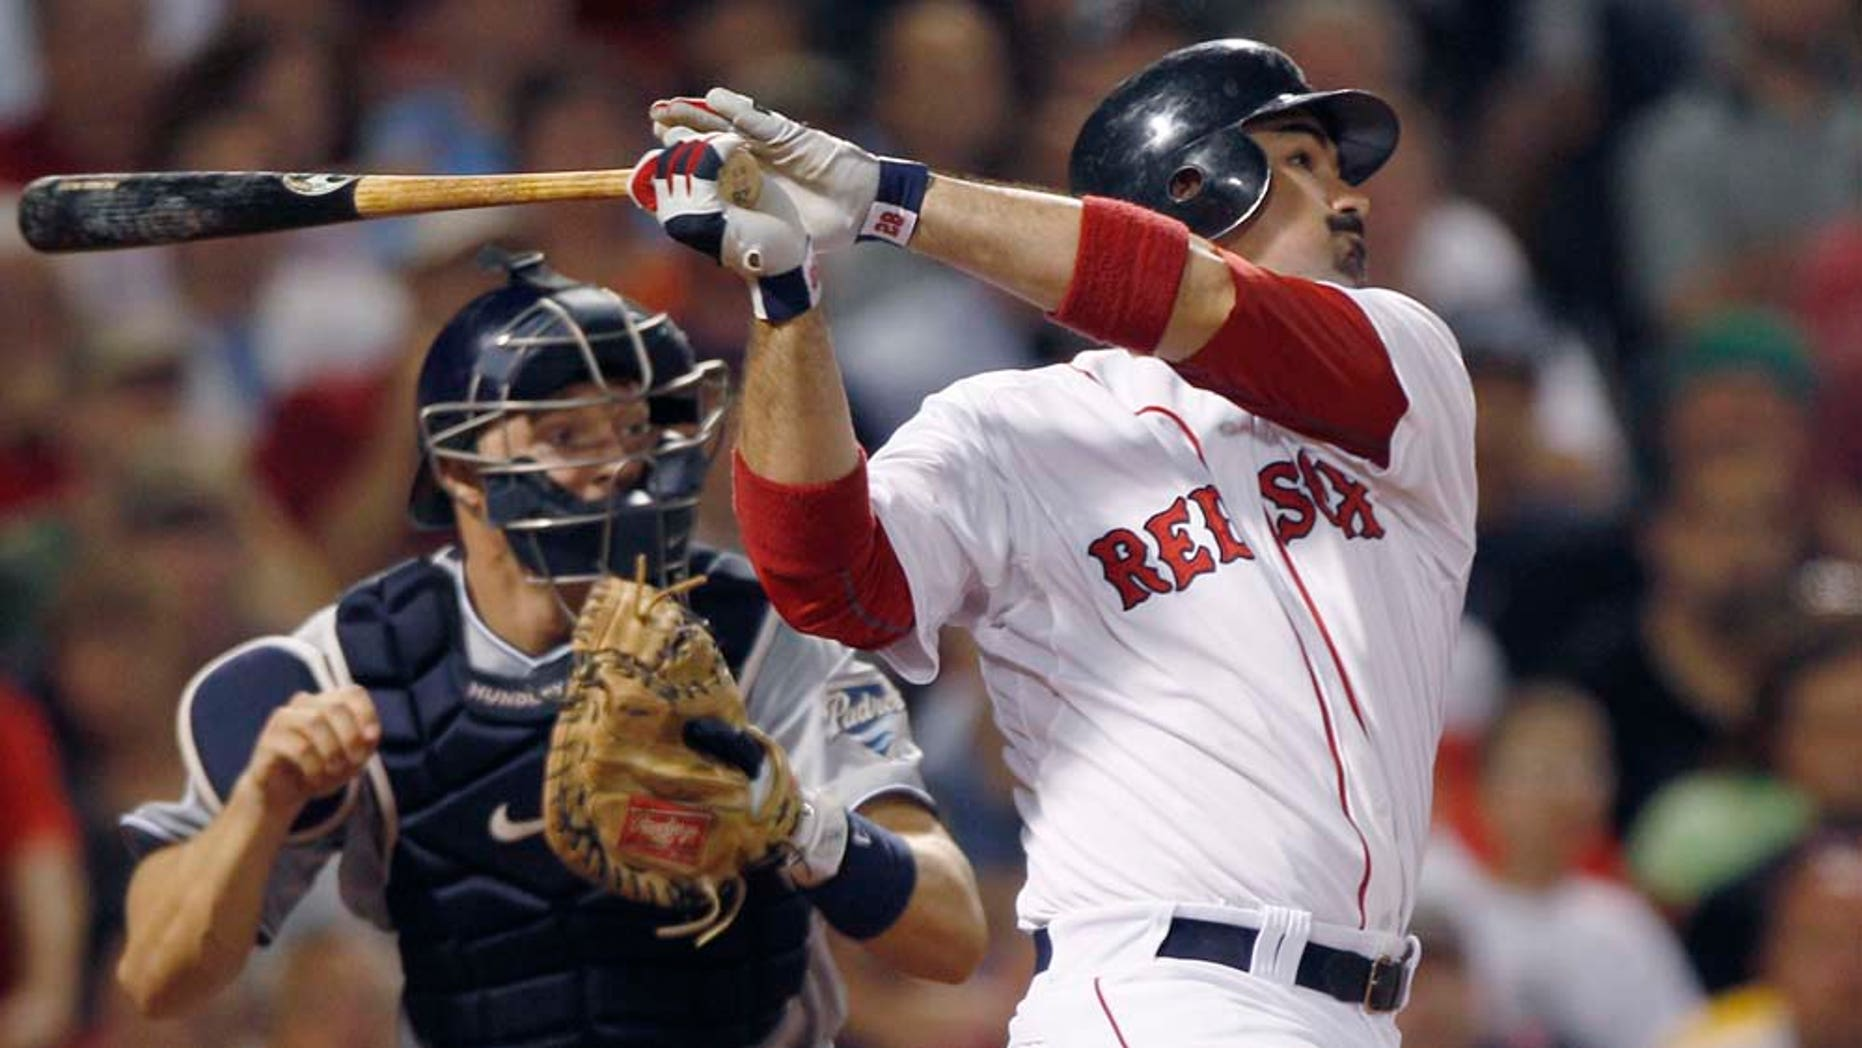 Boston Red Sox Adrian Gonzalez, right, and San Diego Padres catcher Nick Hundley watch Gonzalez's RBI double, breaking a 3-3 tie, in the bottom of the seventh inning of an interleague baseball game at Fenway Park in Boston, Monday, June 20, 2011. (AP Photo/Charles Krupa)